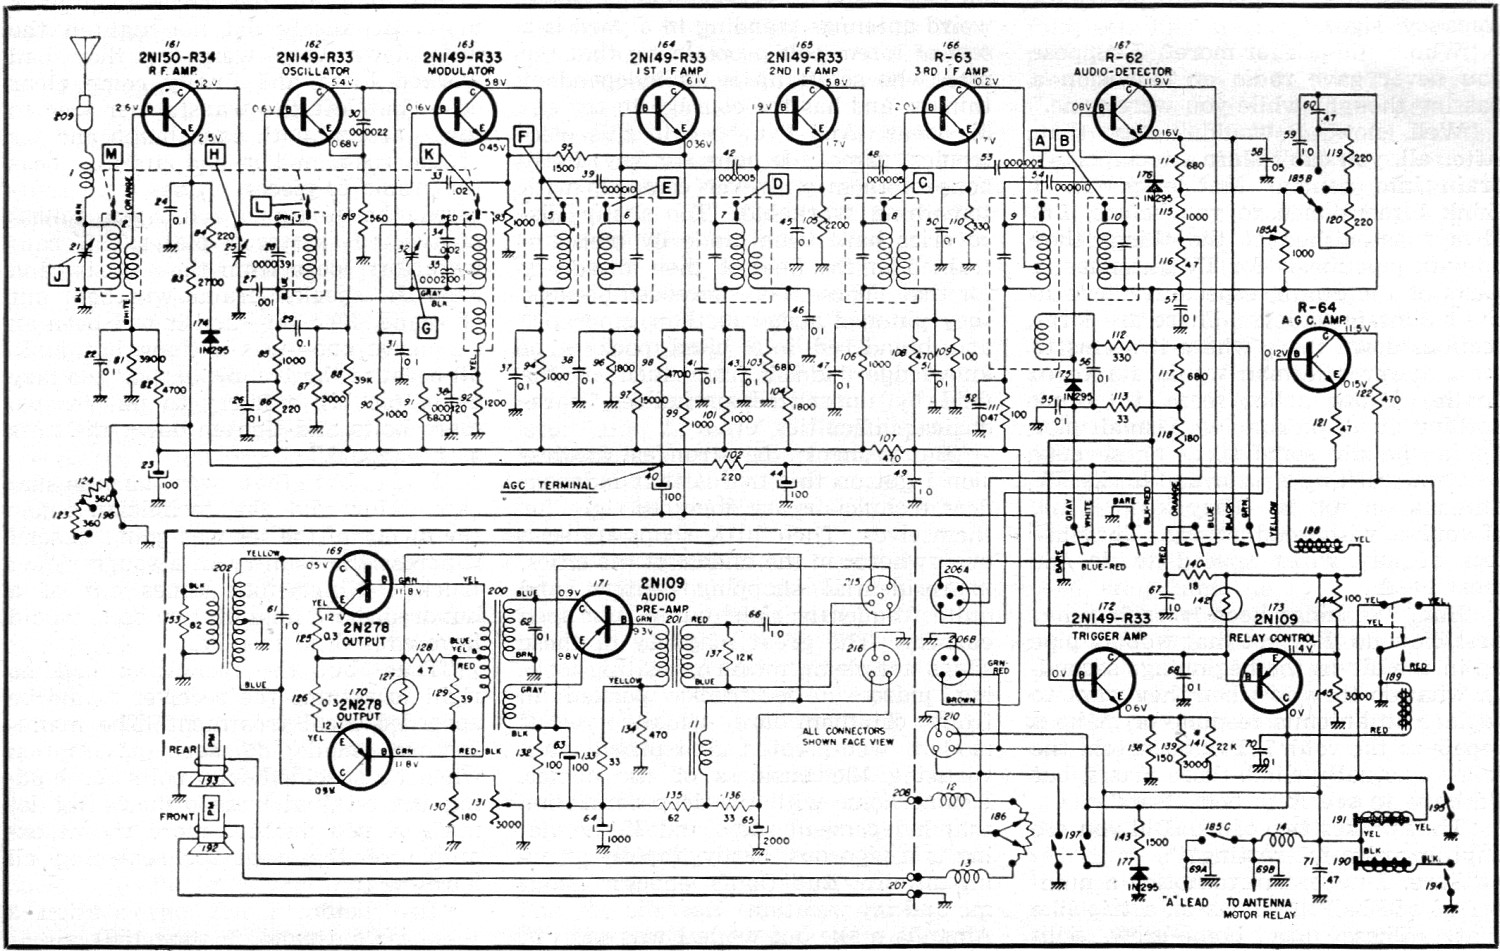 clarion wiring harness diagram with Delco Car Radio Wiring Diagram on Saab 9 3 Radio Wiring Diagram besides 93 Pathfinder Factory Stereo Wiring Diagram together with Clarion Db325 Stereo Wiring Code For Car together with Delco Car Radio Wiring Diagram moreover Showthread.